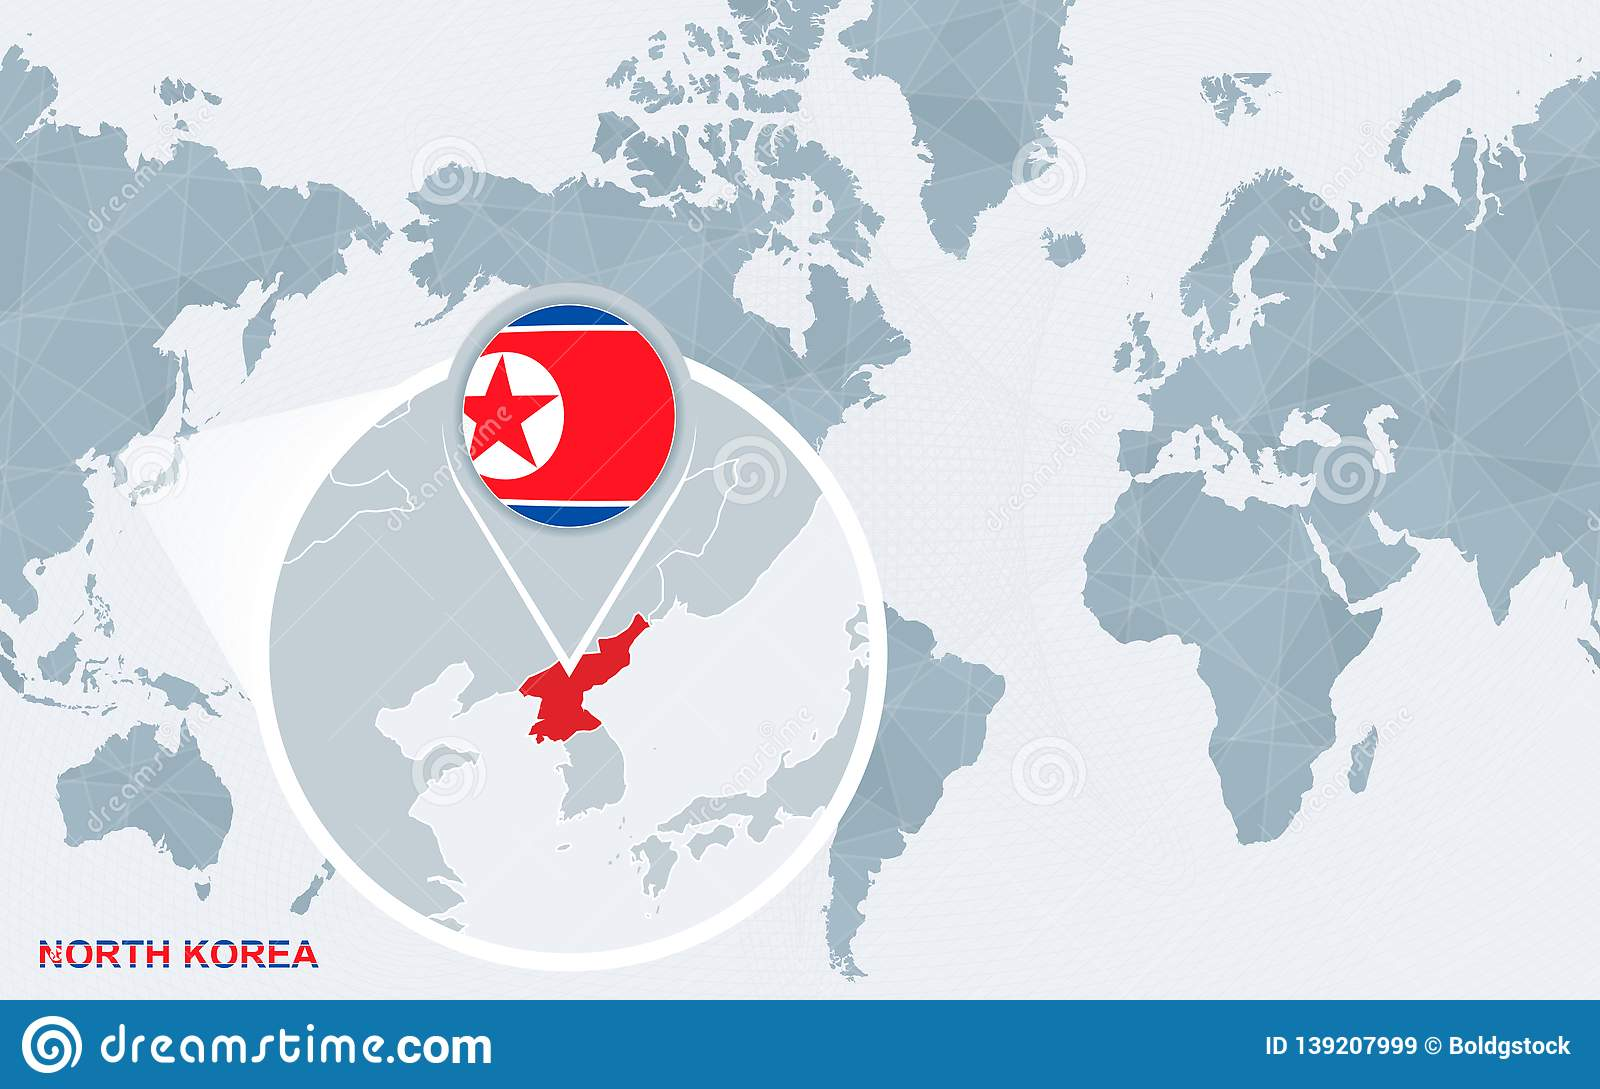 World Map Centered On America With Magnified North Korea Stock ... on korean peninsula on world map, japan korea map, south korea world map, north korea map, seoul korea on world map,